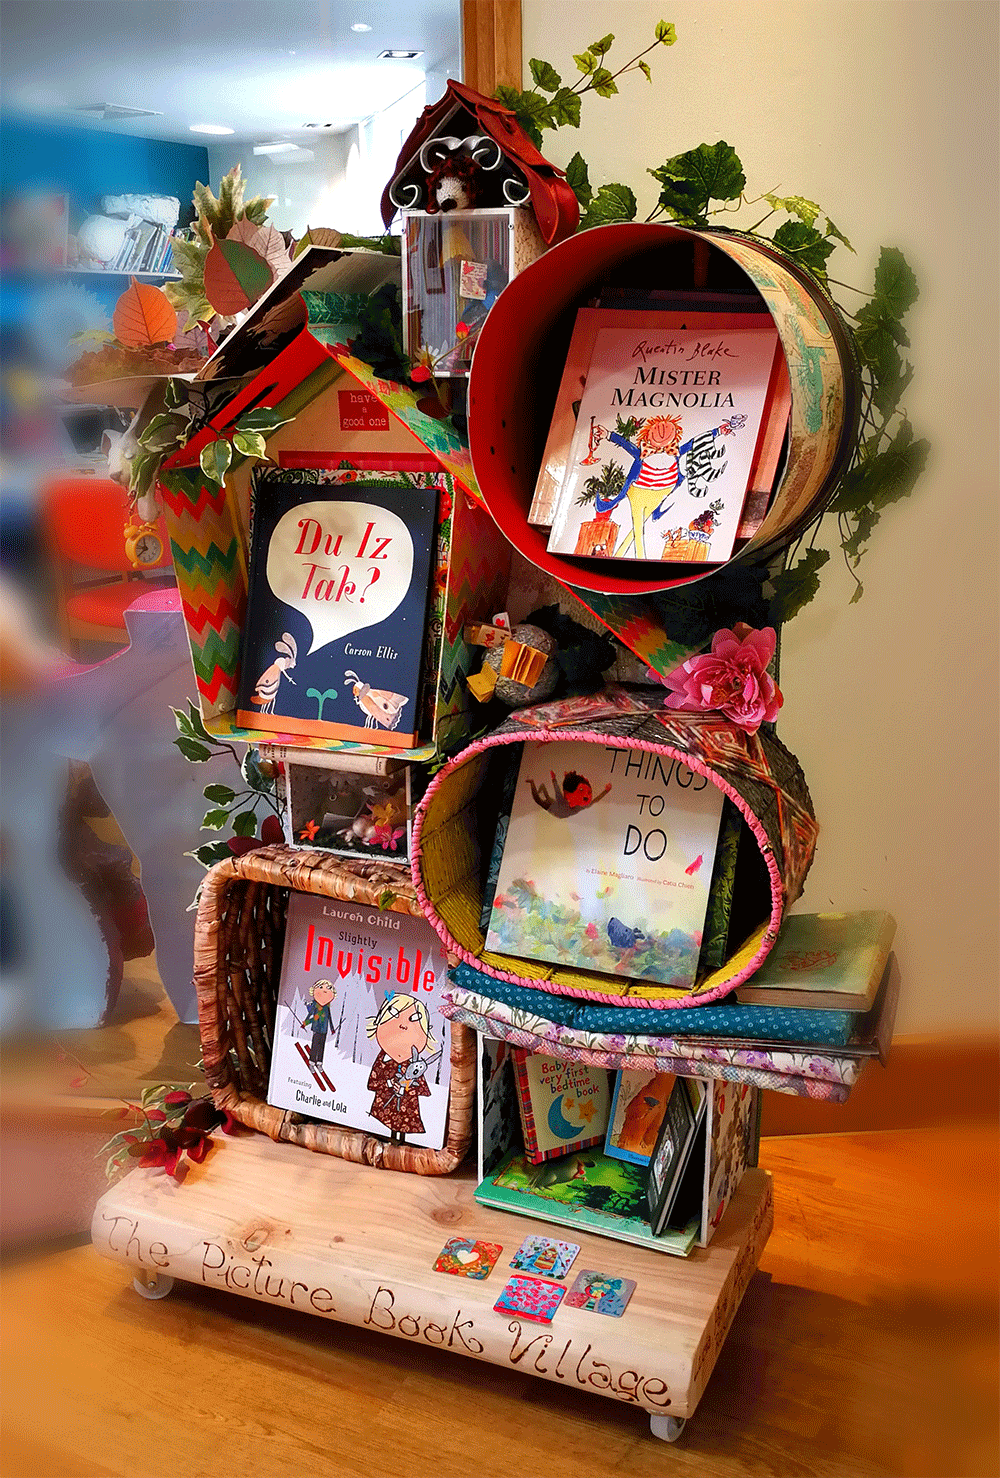 The Picture Book Village - Self initiated project, a whimsical picture book display to help children of all ages wonder, located at the Mountabattern Hospice, Isle of Wight.